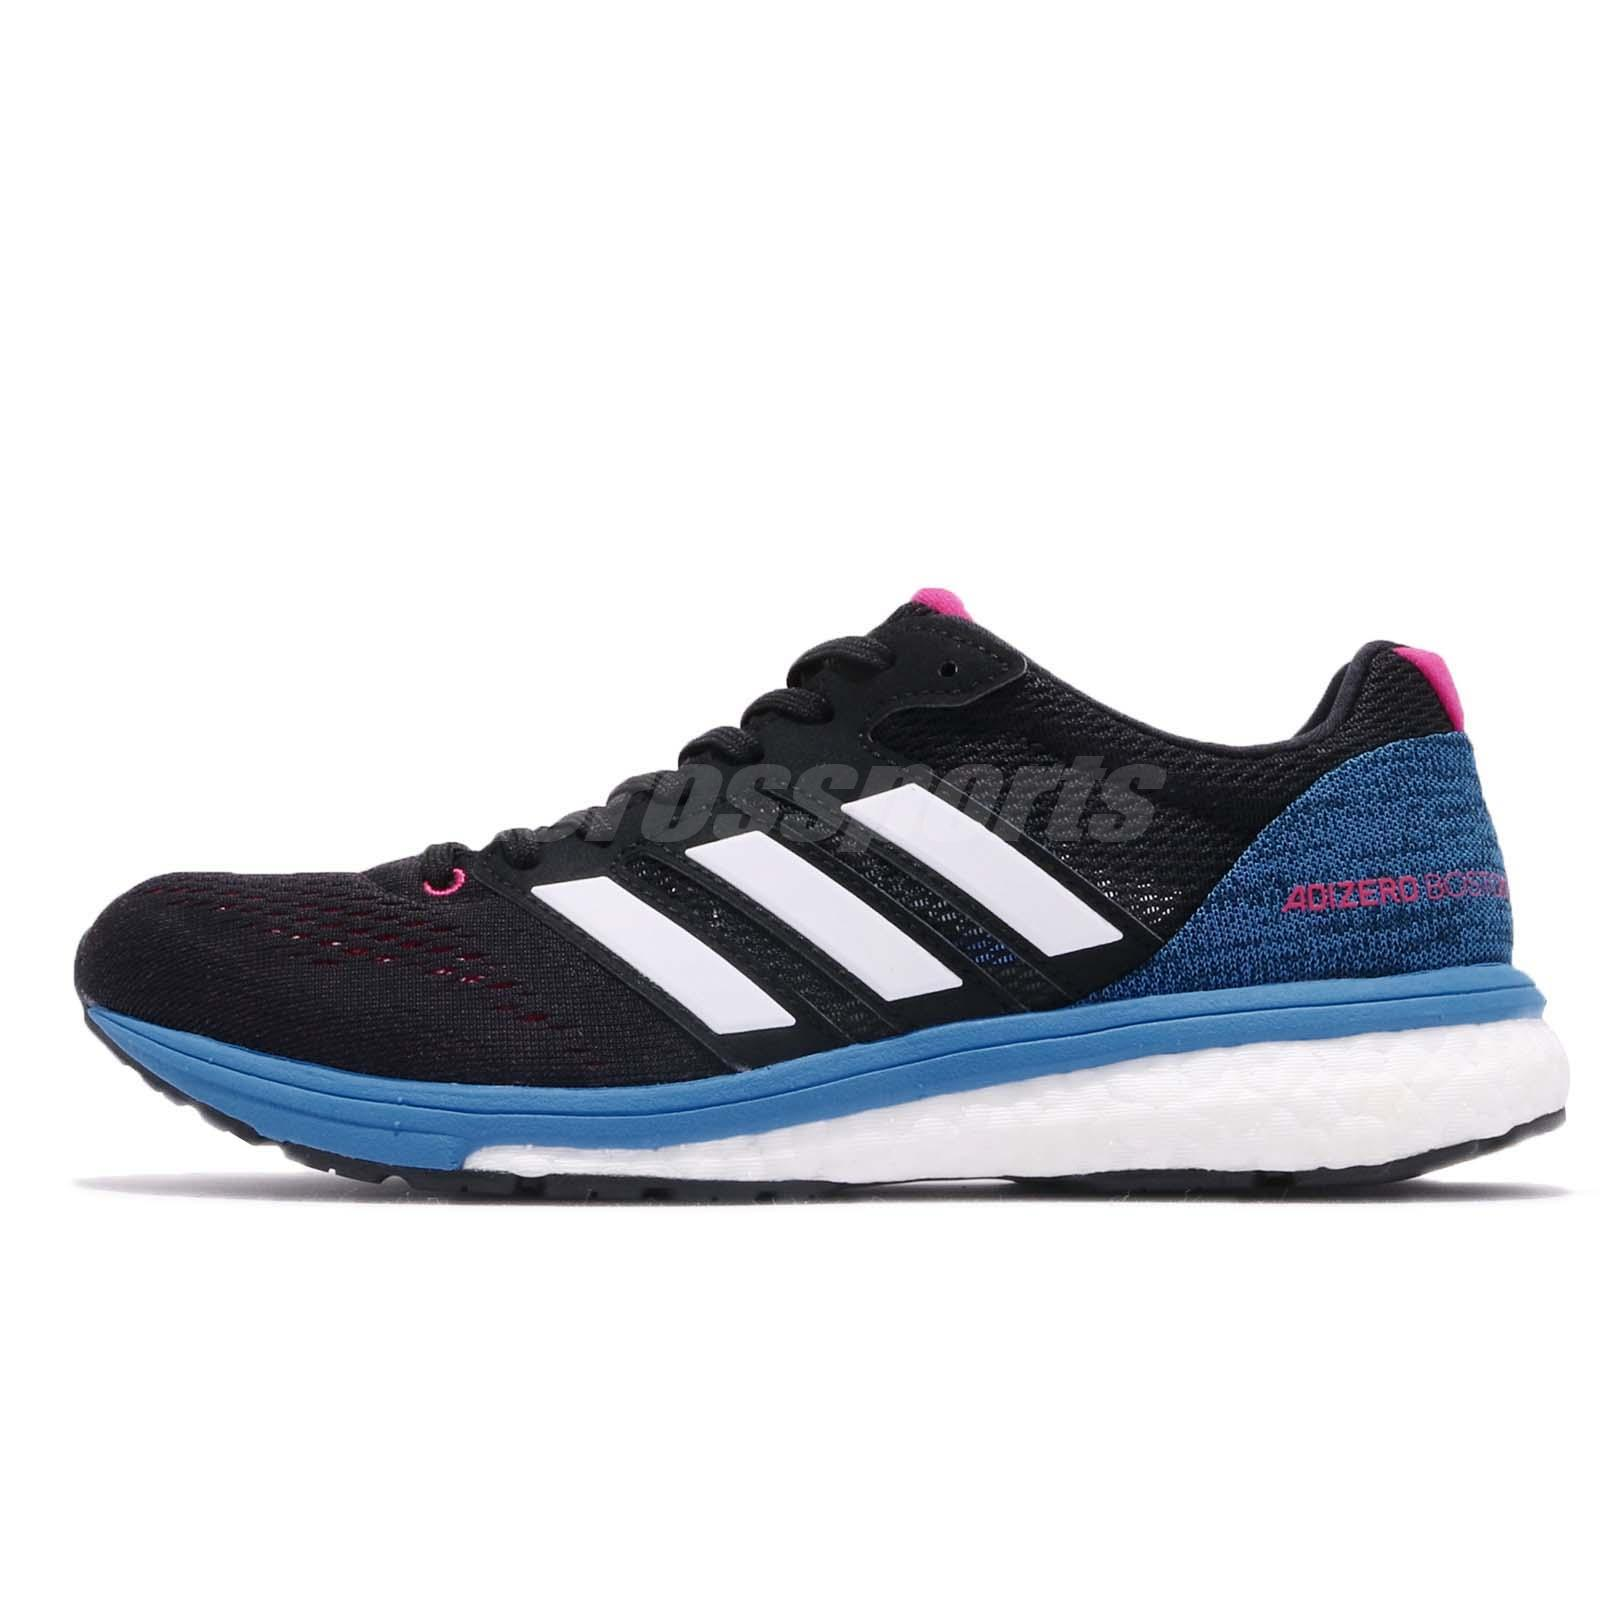 3c8532a92714 Details about adidas Adizero Boston 7 W BOOST Black Blue White Womens  Running Shoes BB6501